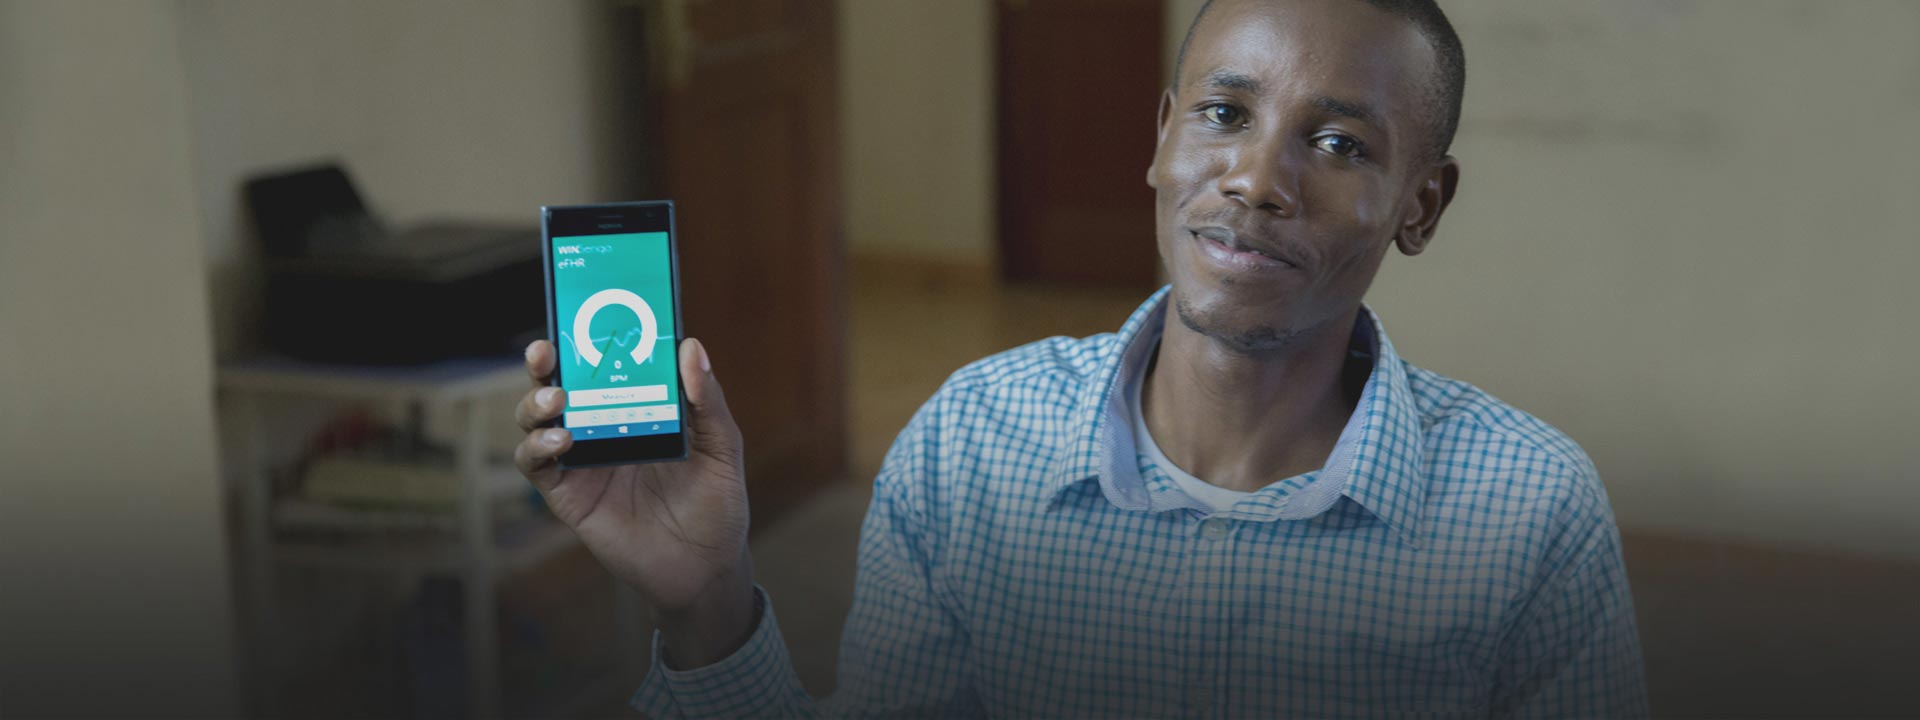 Smiling man holding a phone with the screen showing the WinSenga app